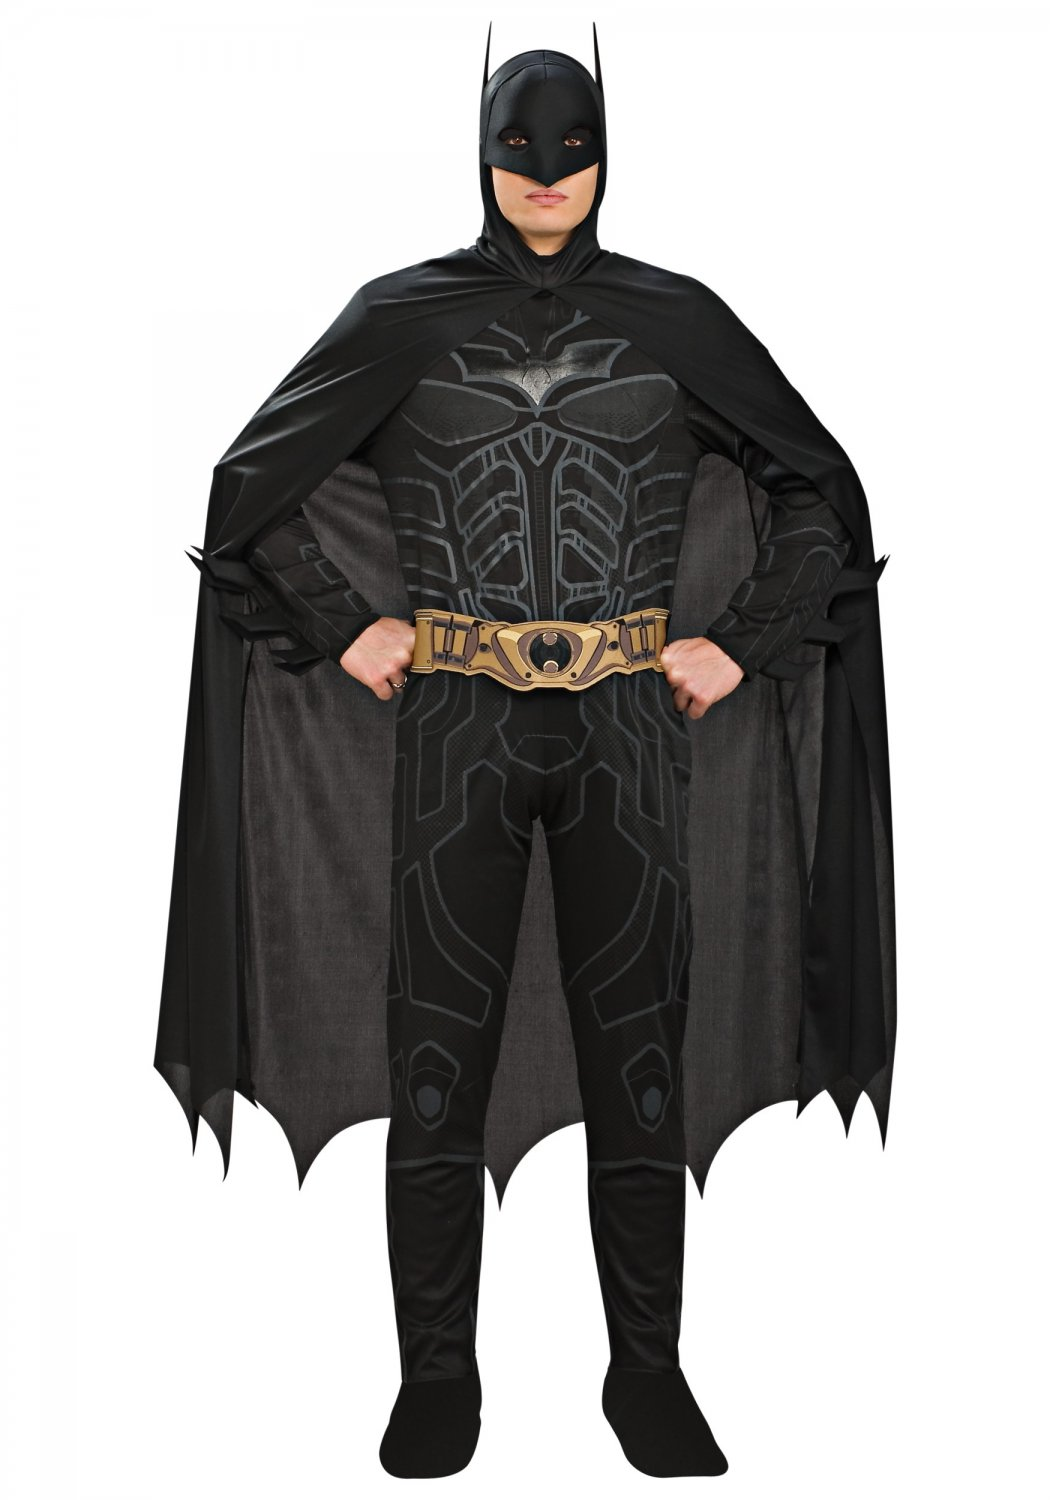 Batman Dark Knight Returns Costume Size: Large #880629L